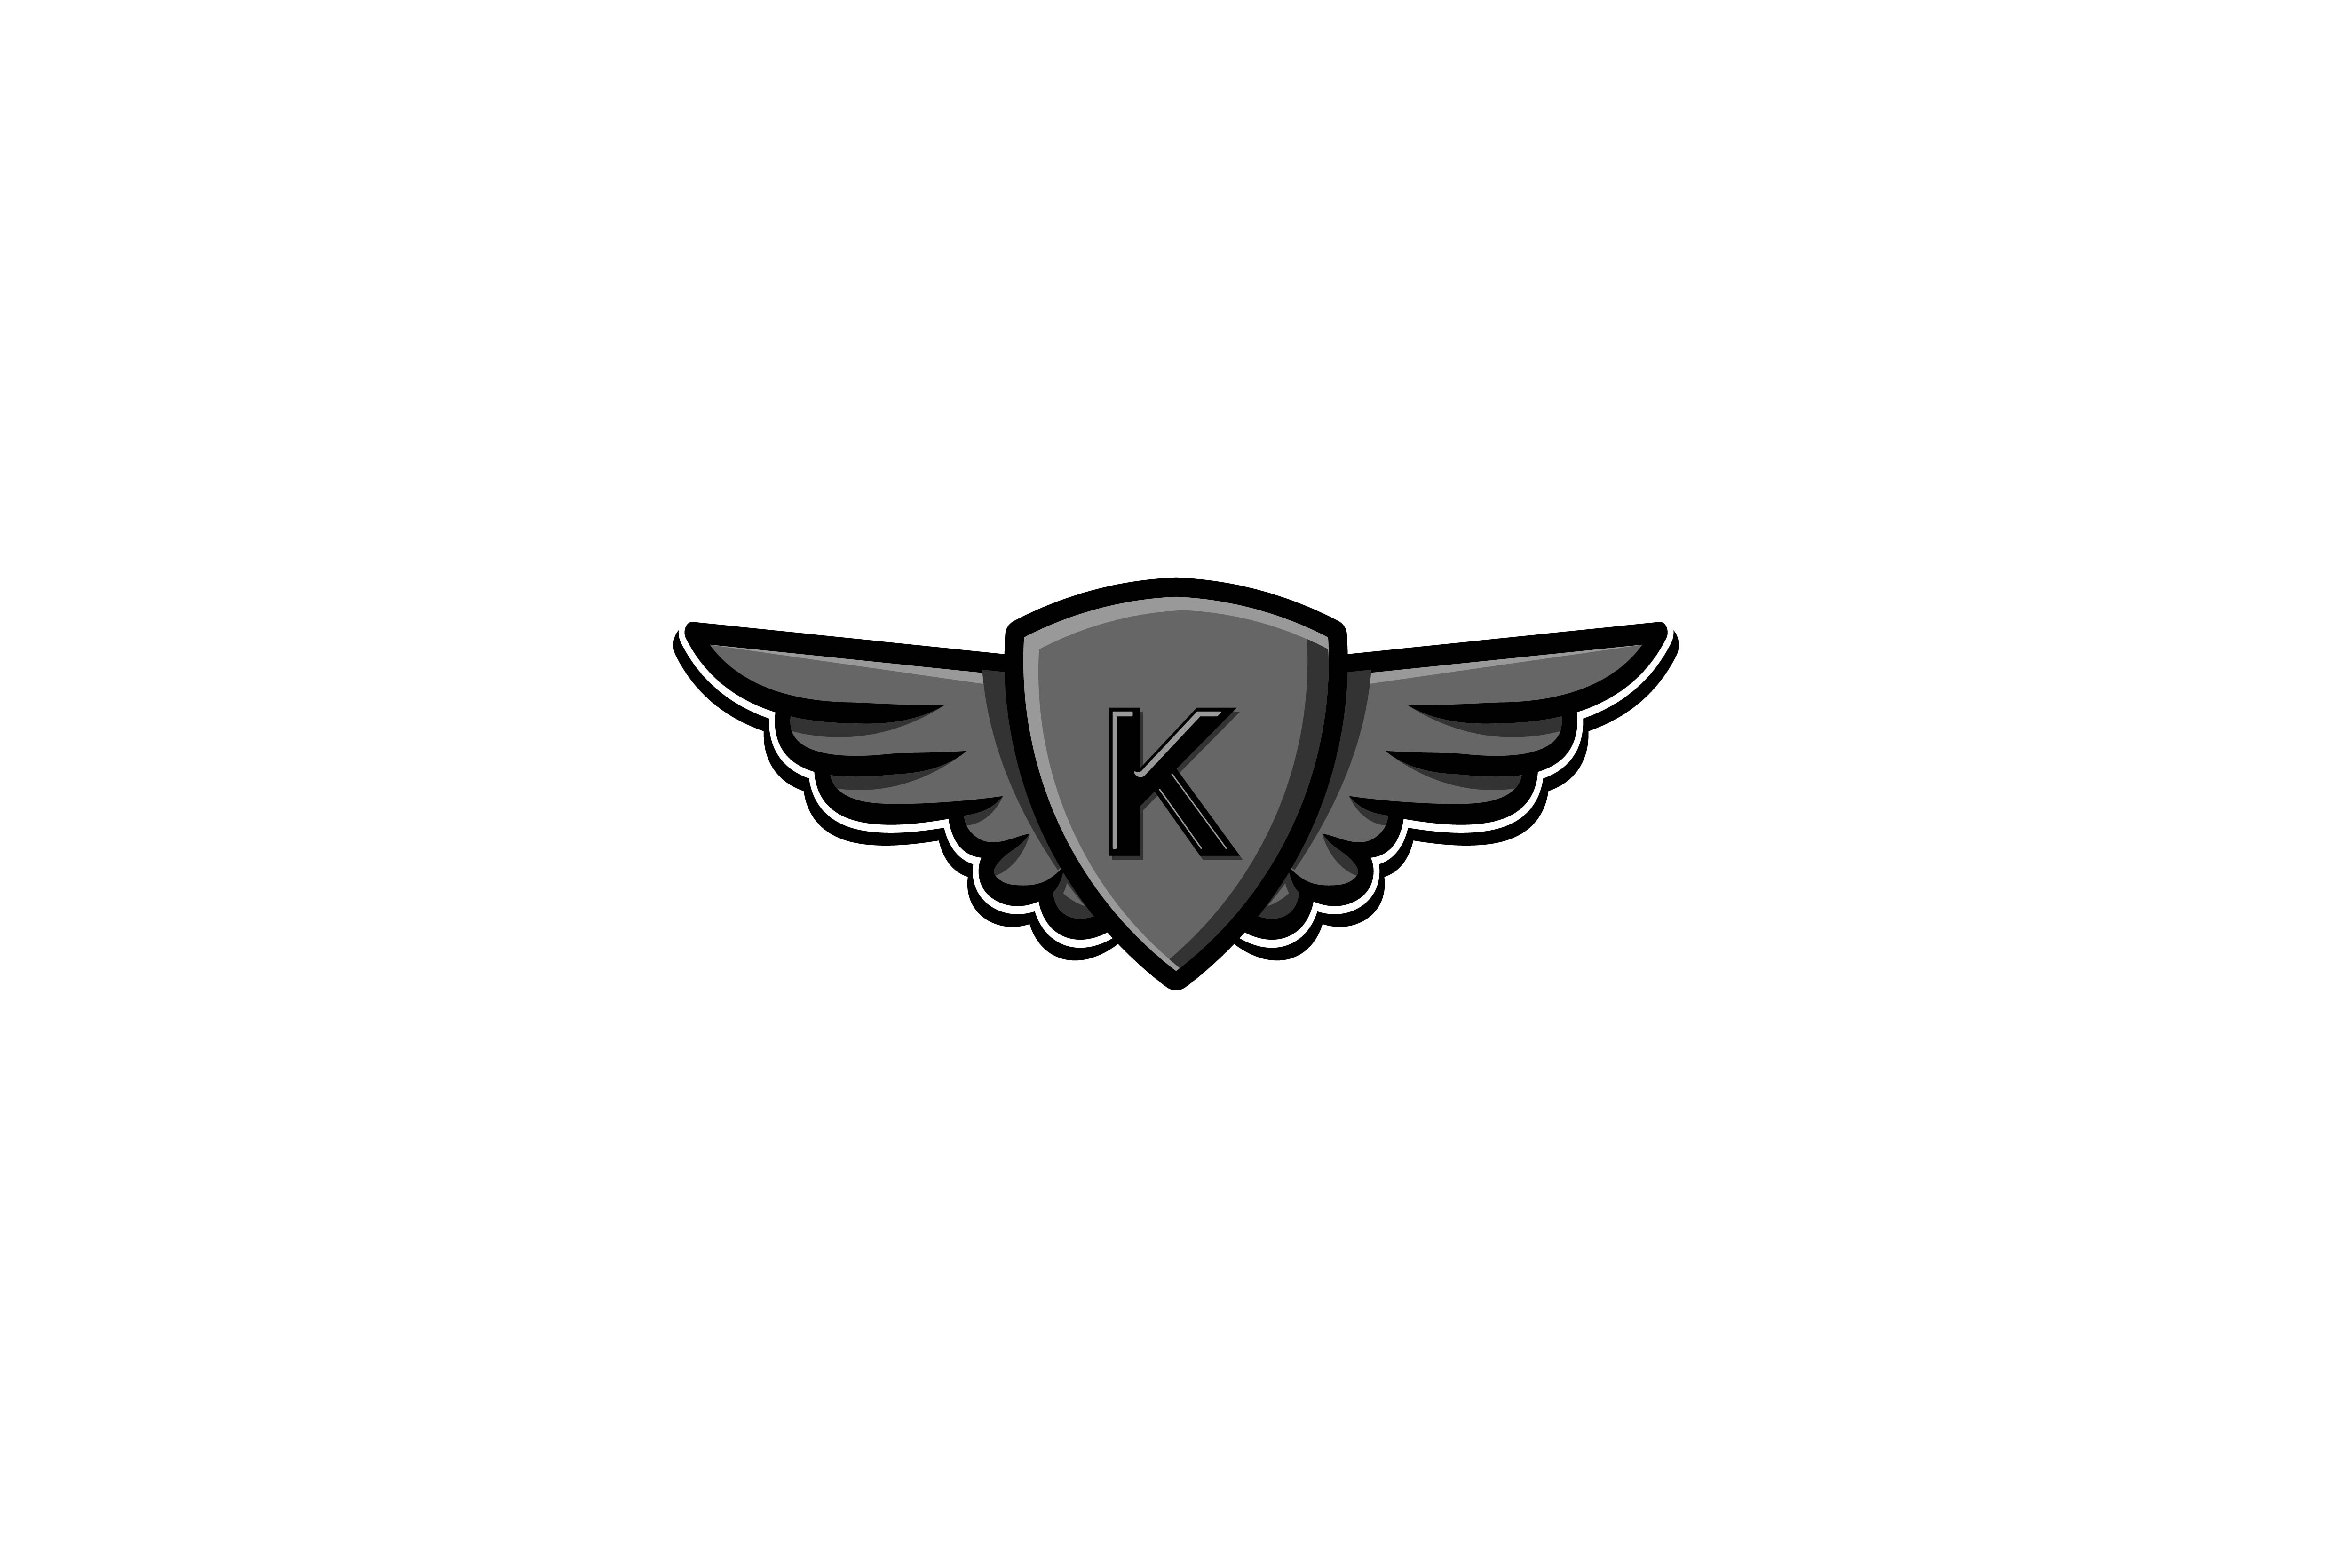 Download Free Letter K Wing And Shield Protection Motorcycle Logo Graphic By for Cricut Explore, Silhouette and other cutting machines.